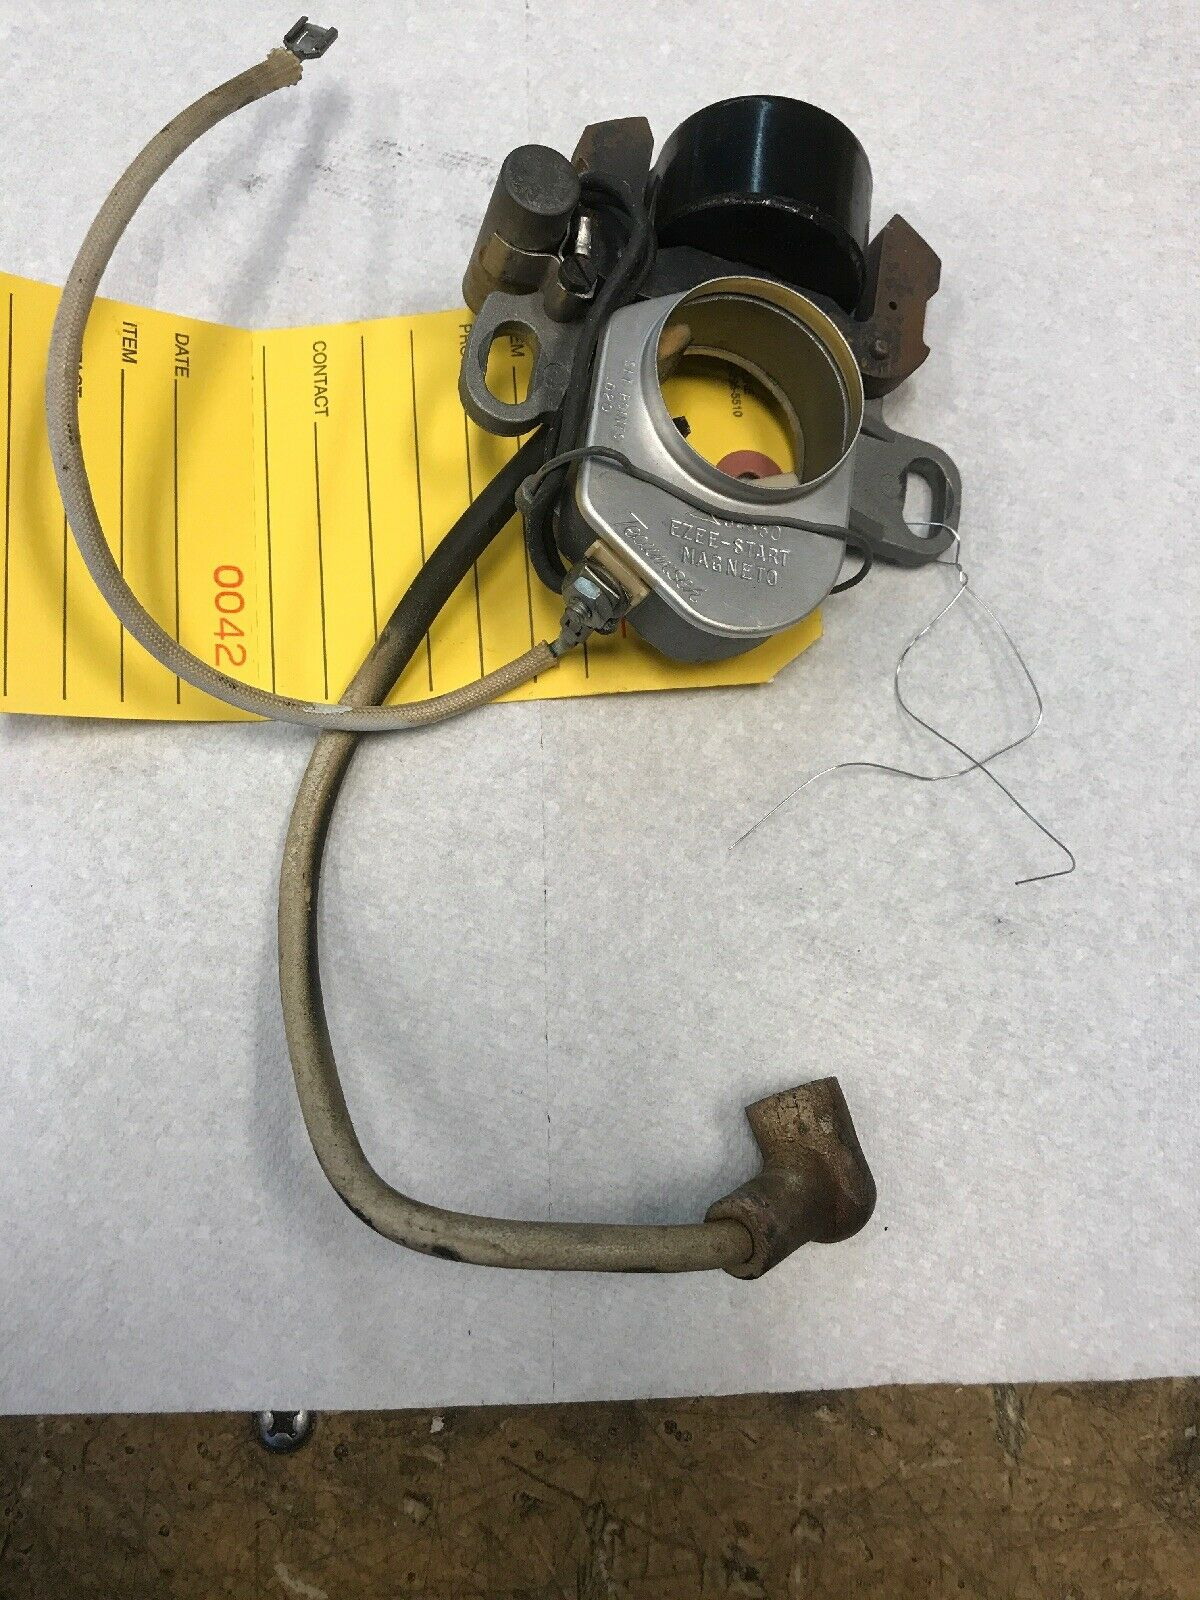 OEM NICE USED JIFFY COMPLETE TESTED ELECTRICAL IGNITION COIL,CONDENSER,POINTS